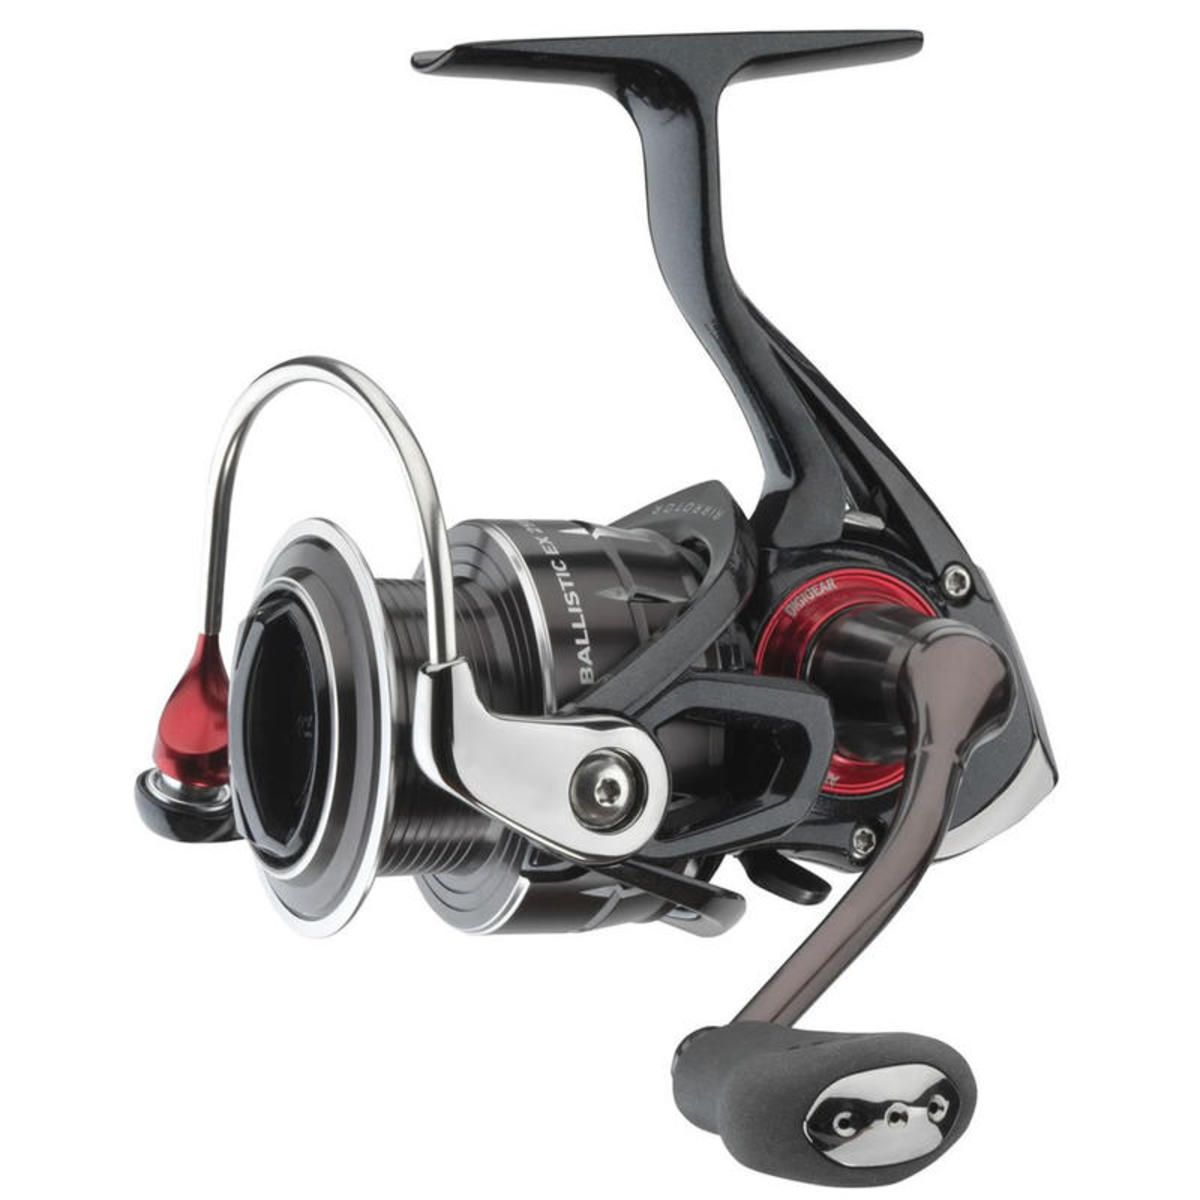 CLEARANCE DAIWA BALLISTIC EX2500H MAG SEALED ZAION BODIED FISHING REEL